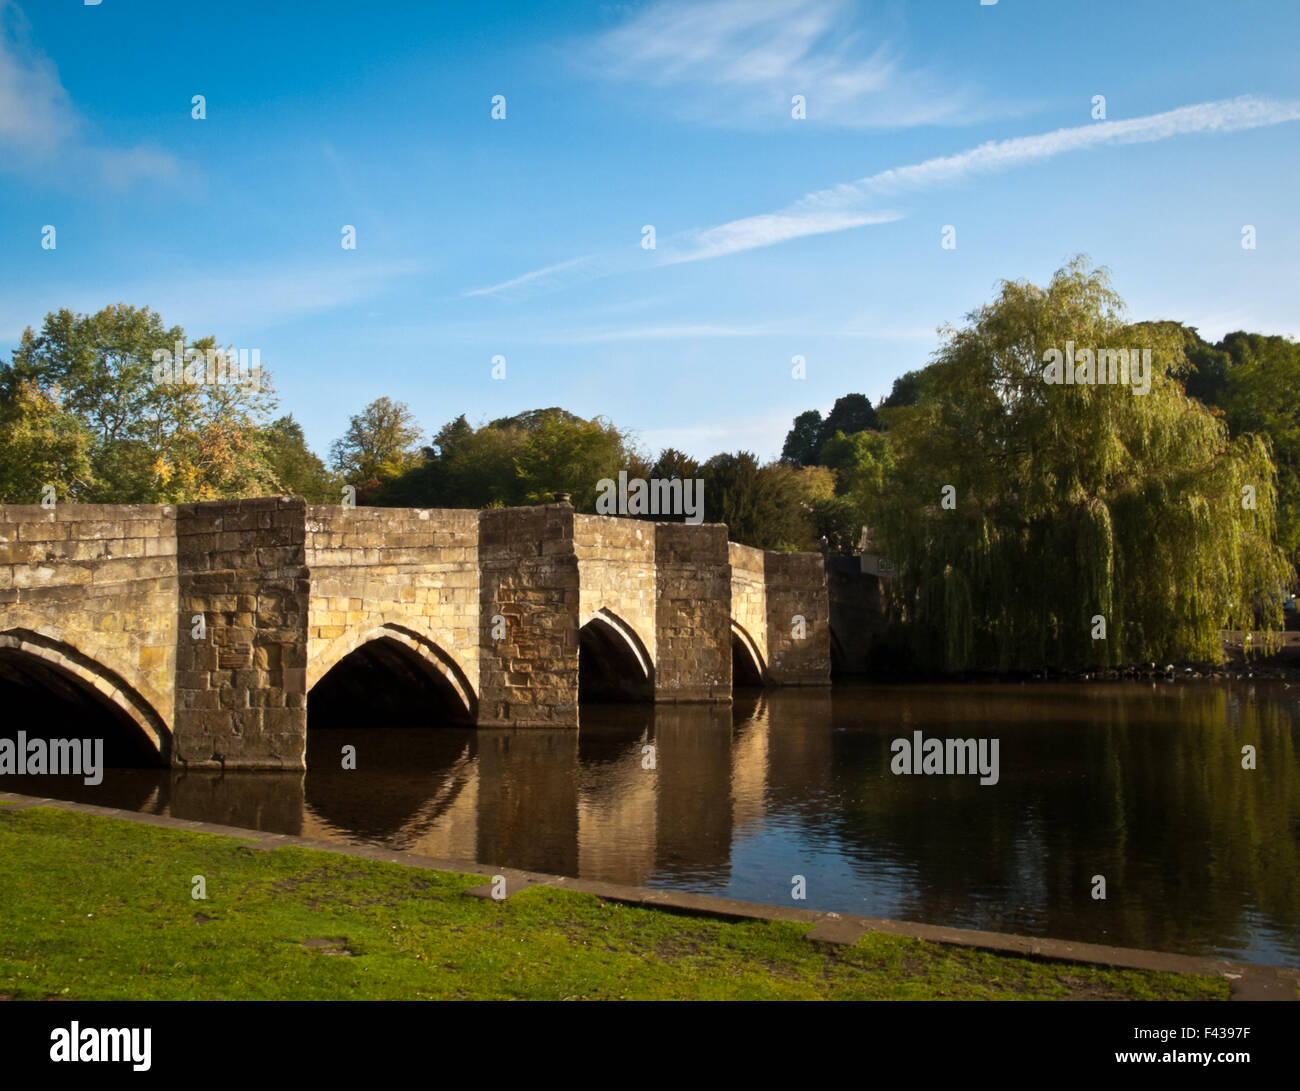 Bakewell Bridge over the river Wye taken on OLYMPUS DIGITAL CAMERA - Stock Image